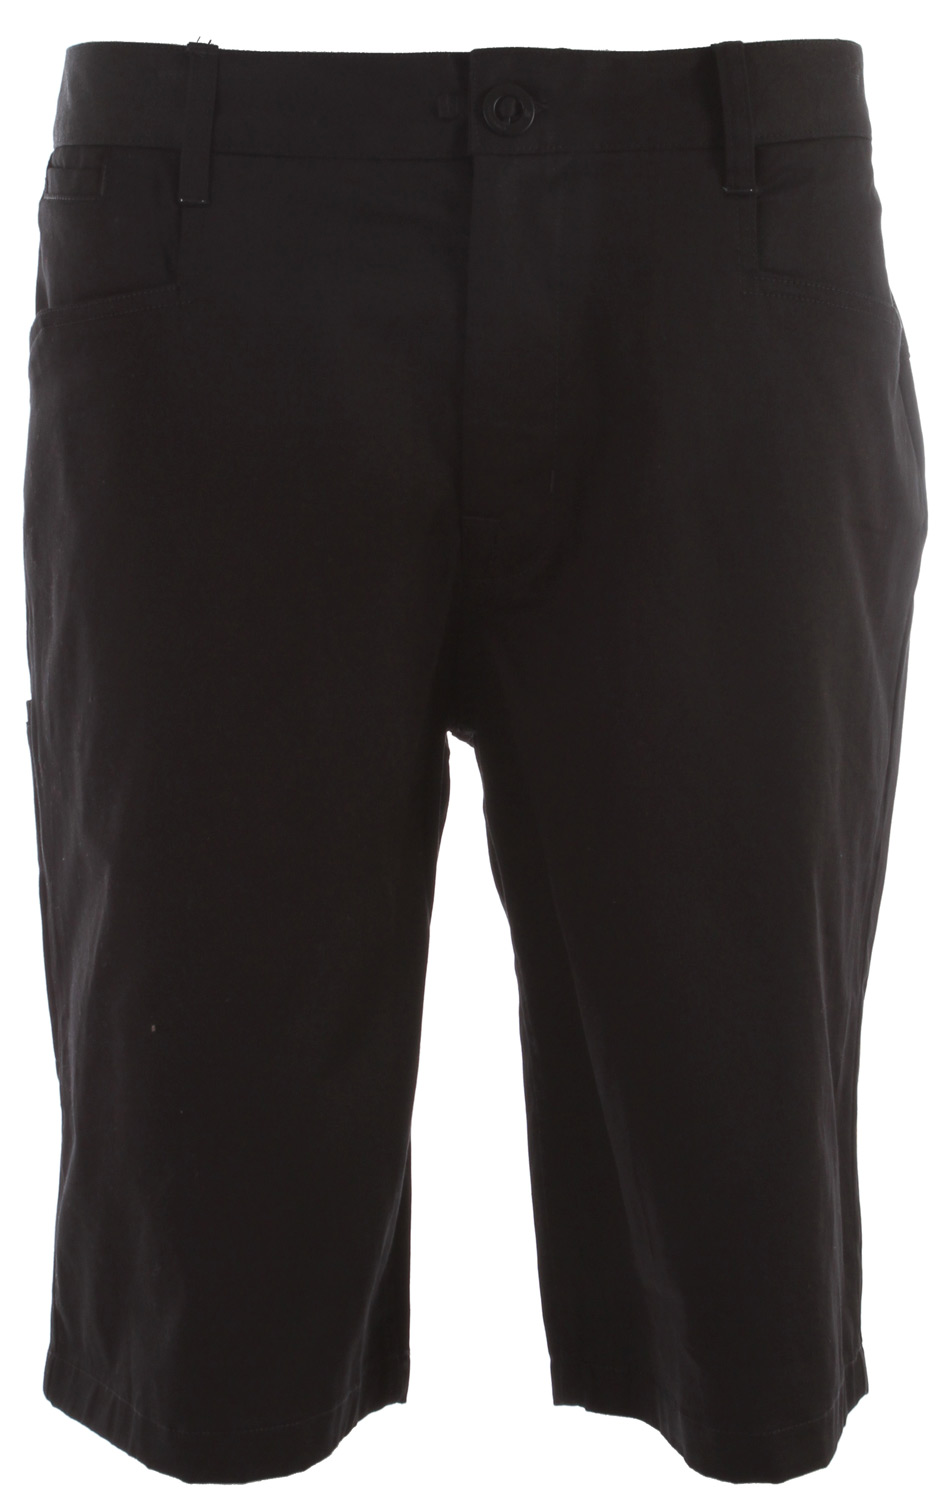 "MTB A comfortable, stretch short with 3M reflective trim designed for urban bike commuting. Key Features of The North Face Hennepin Shorts: Dual secure back stash pockets Reflective elements U-lock belt holster Avg weight: 350 g (12.35 oz) Inseam: R 12"" Fabric: 220 g/m2 (6.48 oz/yd2) 97% cotton, 3% elastane stretch twill - $44.95"